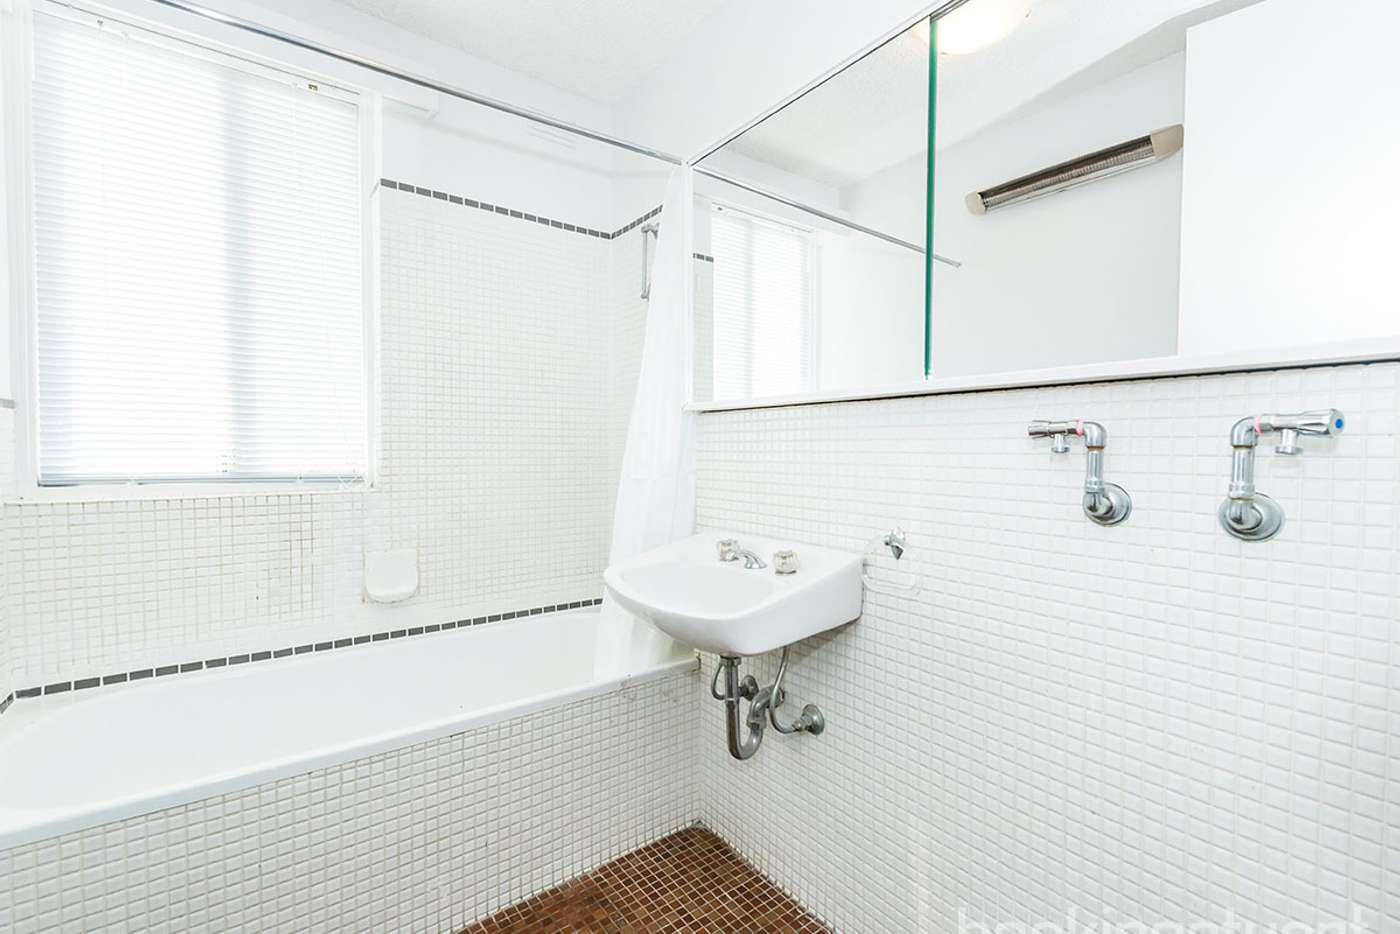 Sixth view of Homely apartment listing, 11/3 Alfred Square, St Kilda VIC 3182